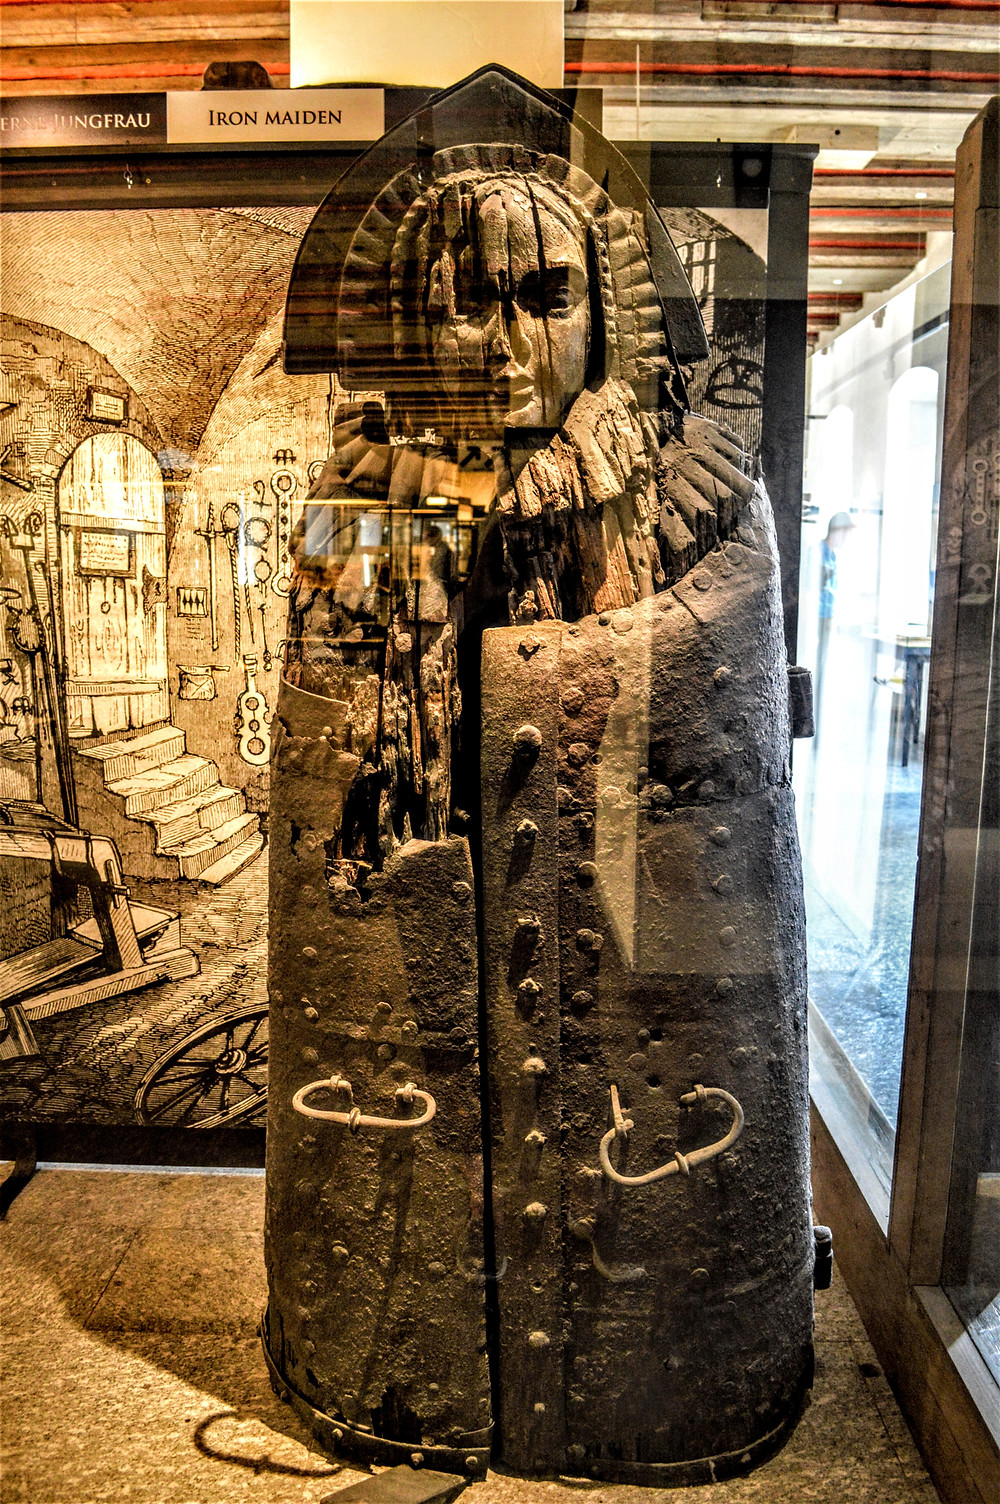 Iron Maiden, Medieval Crime and Justice Museum, Rothenburg ob der Tauber, Bavaria Germany, creepy torture stuff